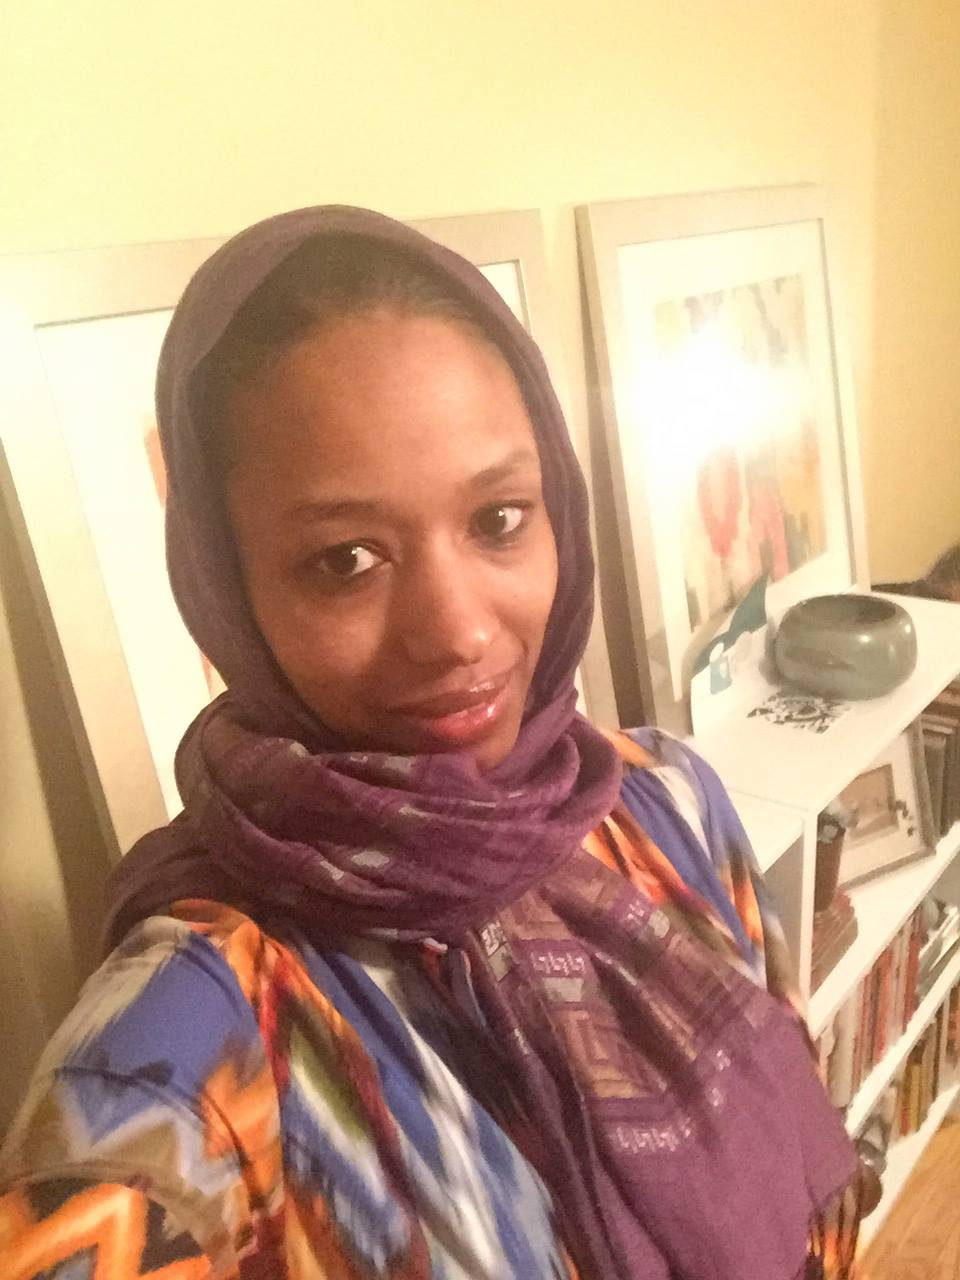 Dr. Larycia Hawkins in a hijab | From Hawkins's Facebook page (http://on.fb.me/1YkQR0n)